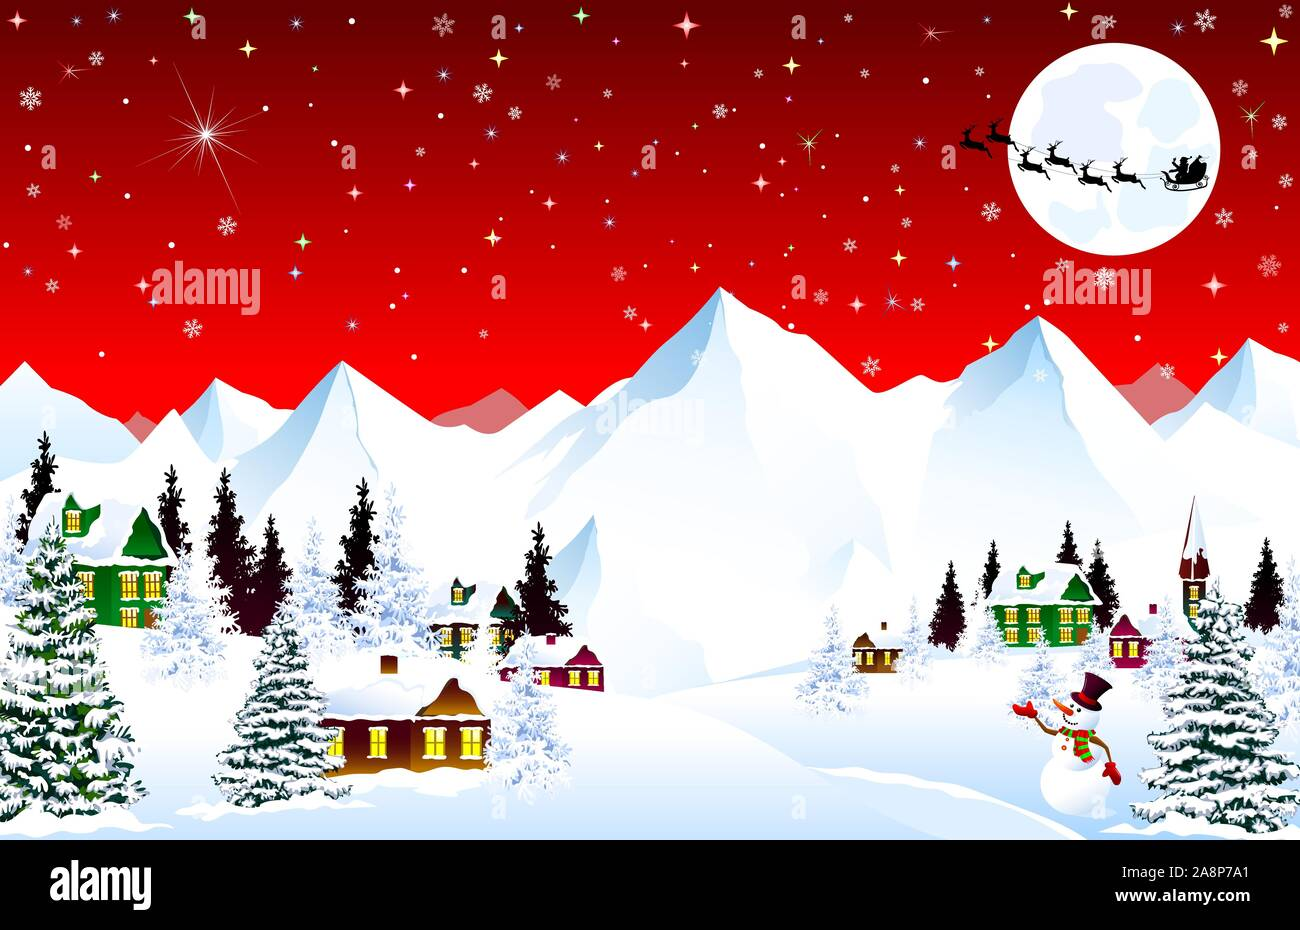 Winter Rural Landscape Christmas Eve Night Mountain Village Snow Forest Mountains Shining Stars And Snowflakes In The Night Sky Santa On A Slei Stock Vector Image Art Alamy